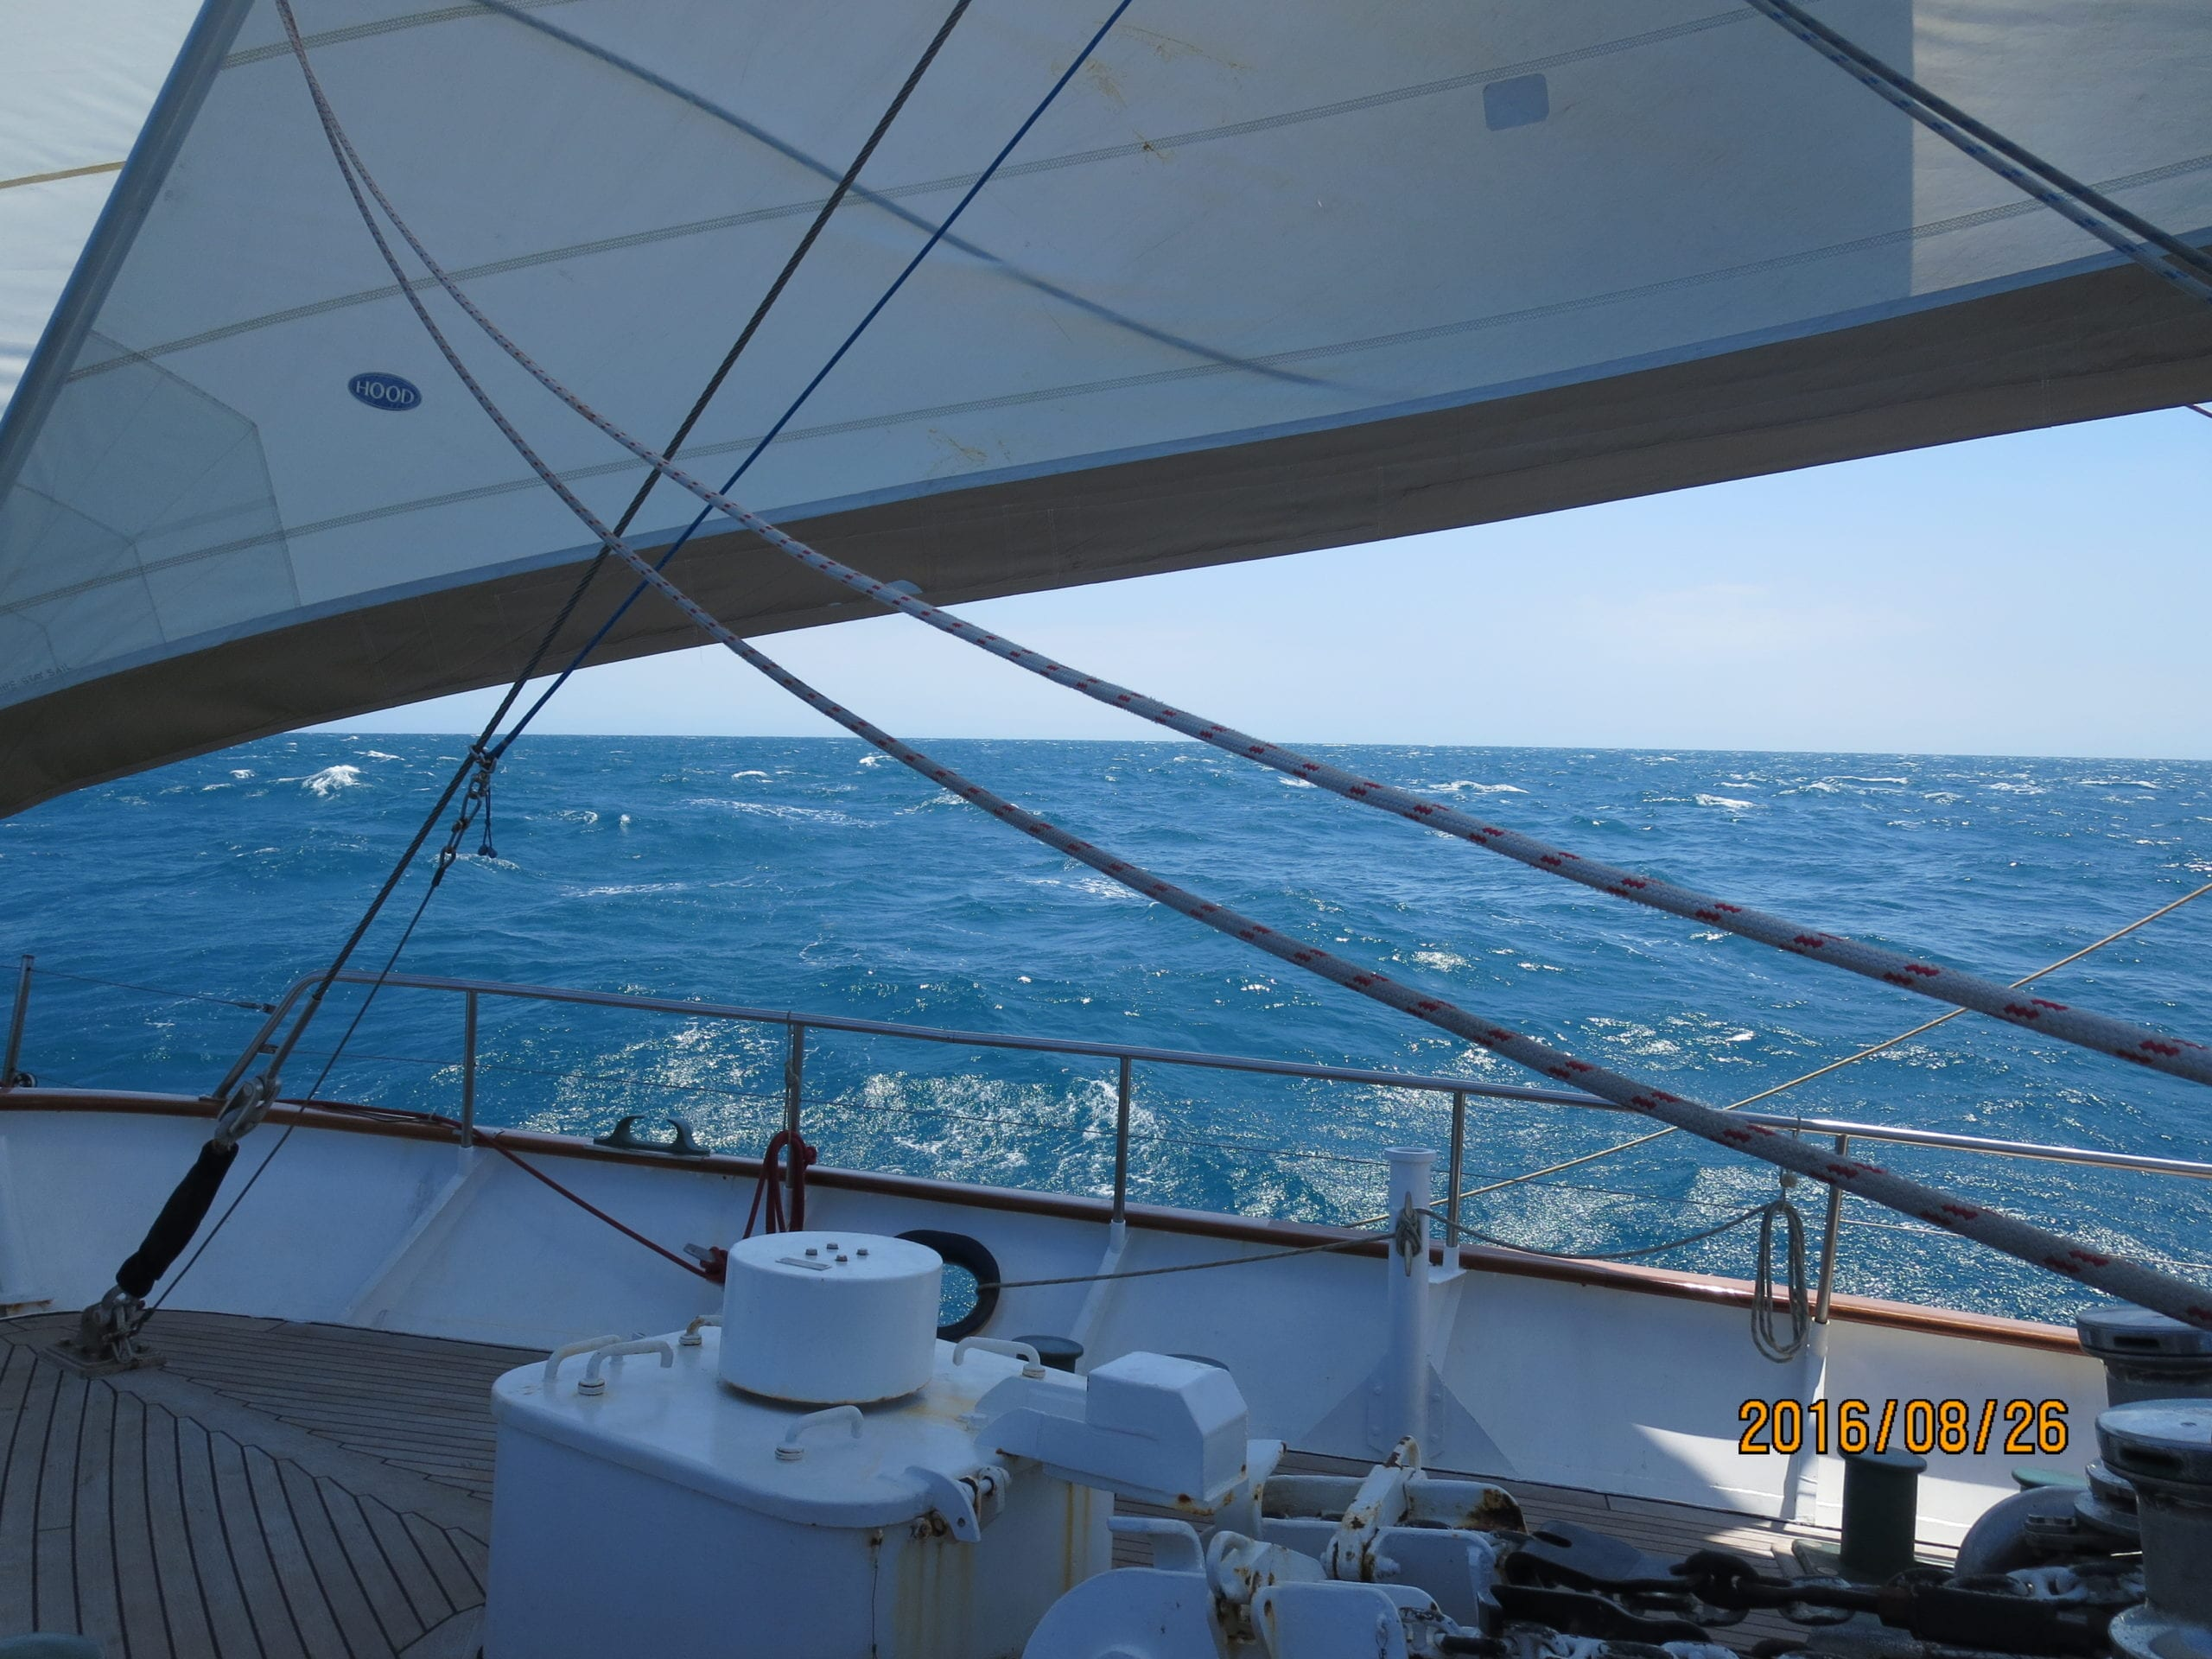 During the 11-day voyage, Issy got the opportunity to climb the mast and also helm the boat.